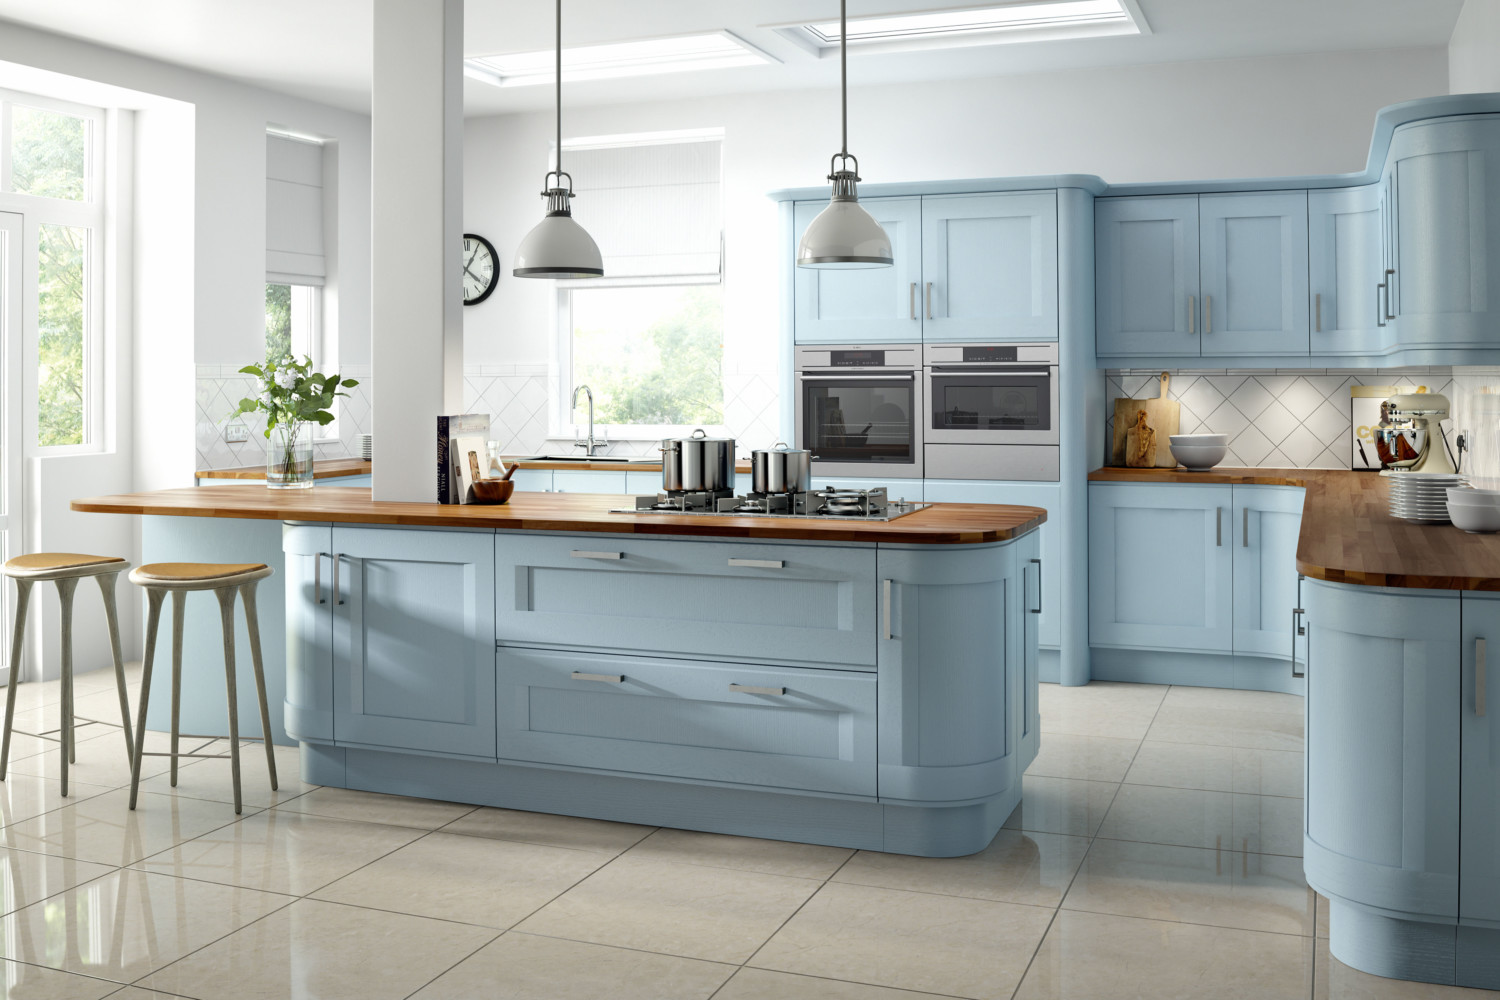 Shaker Kitchens Southampton | Blue kitchens Southampton